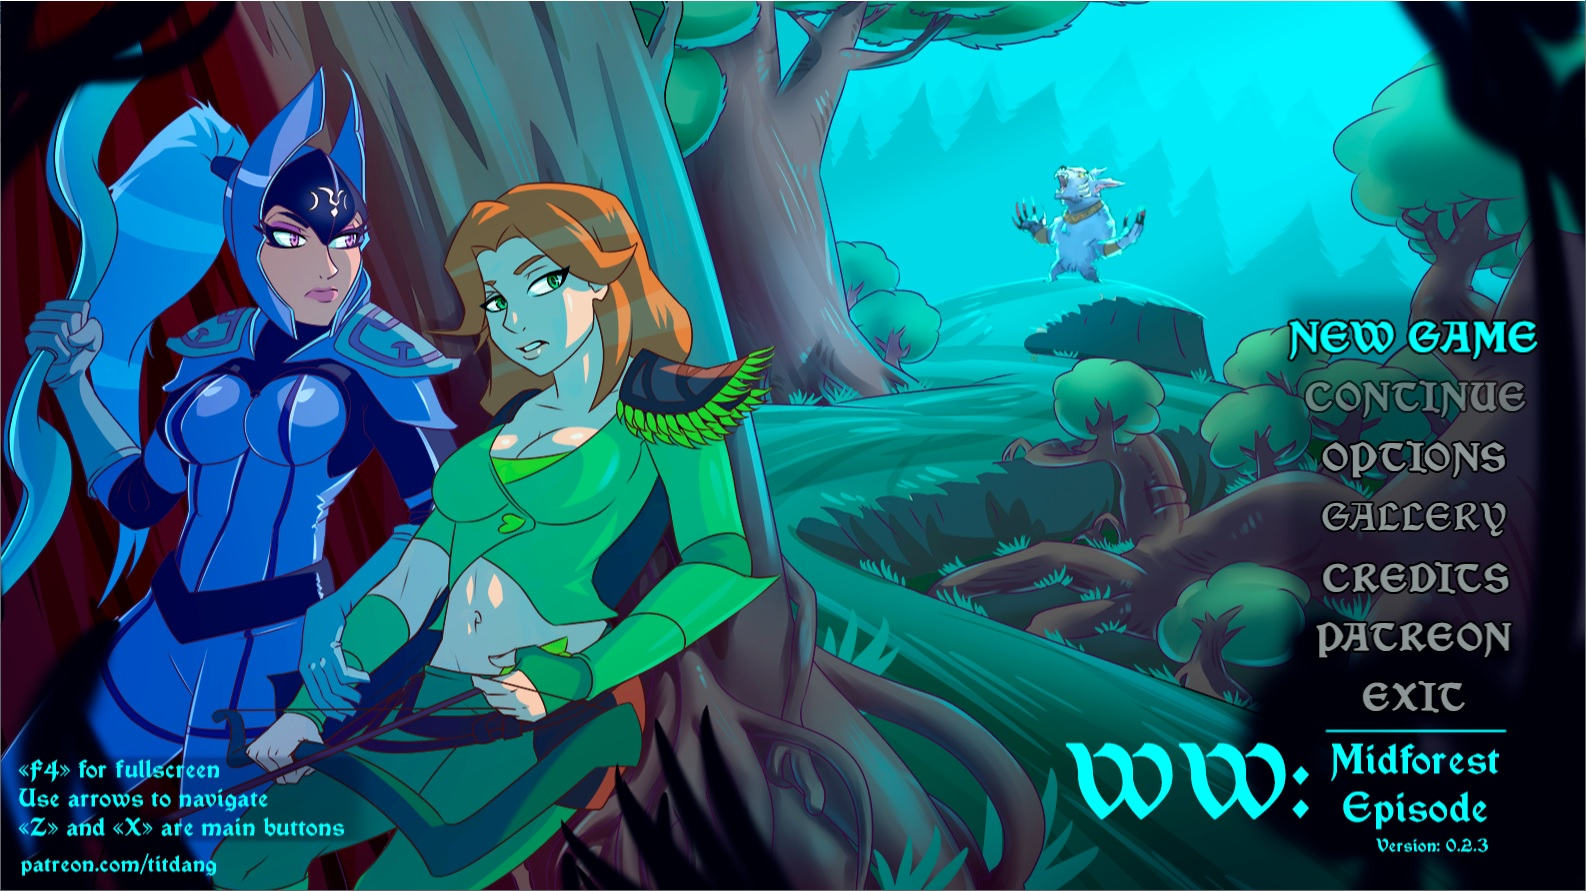 WW - Midforest – Version 0.2.3